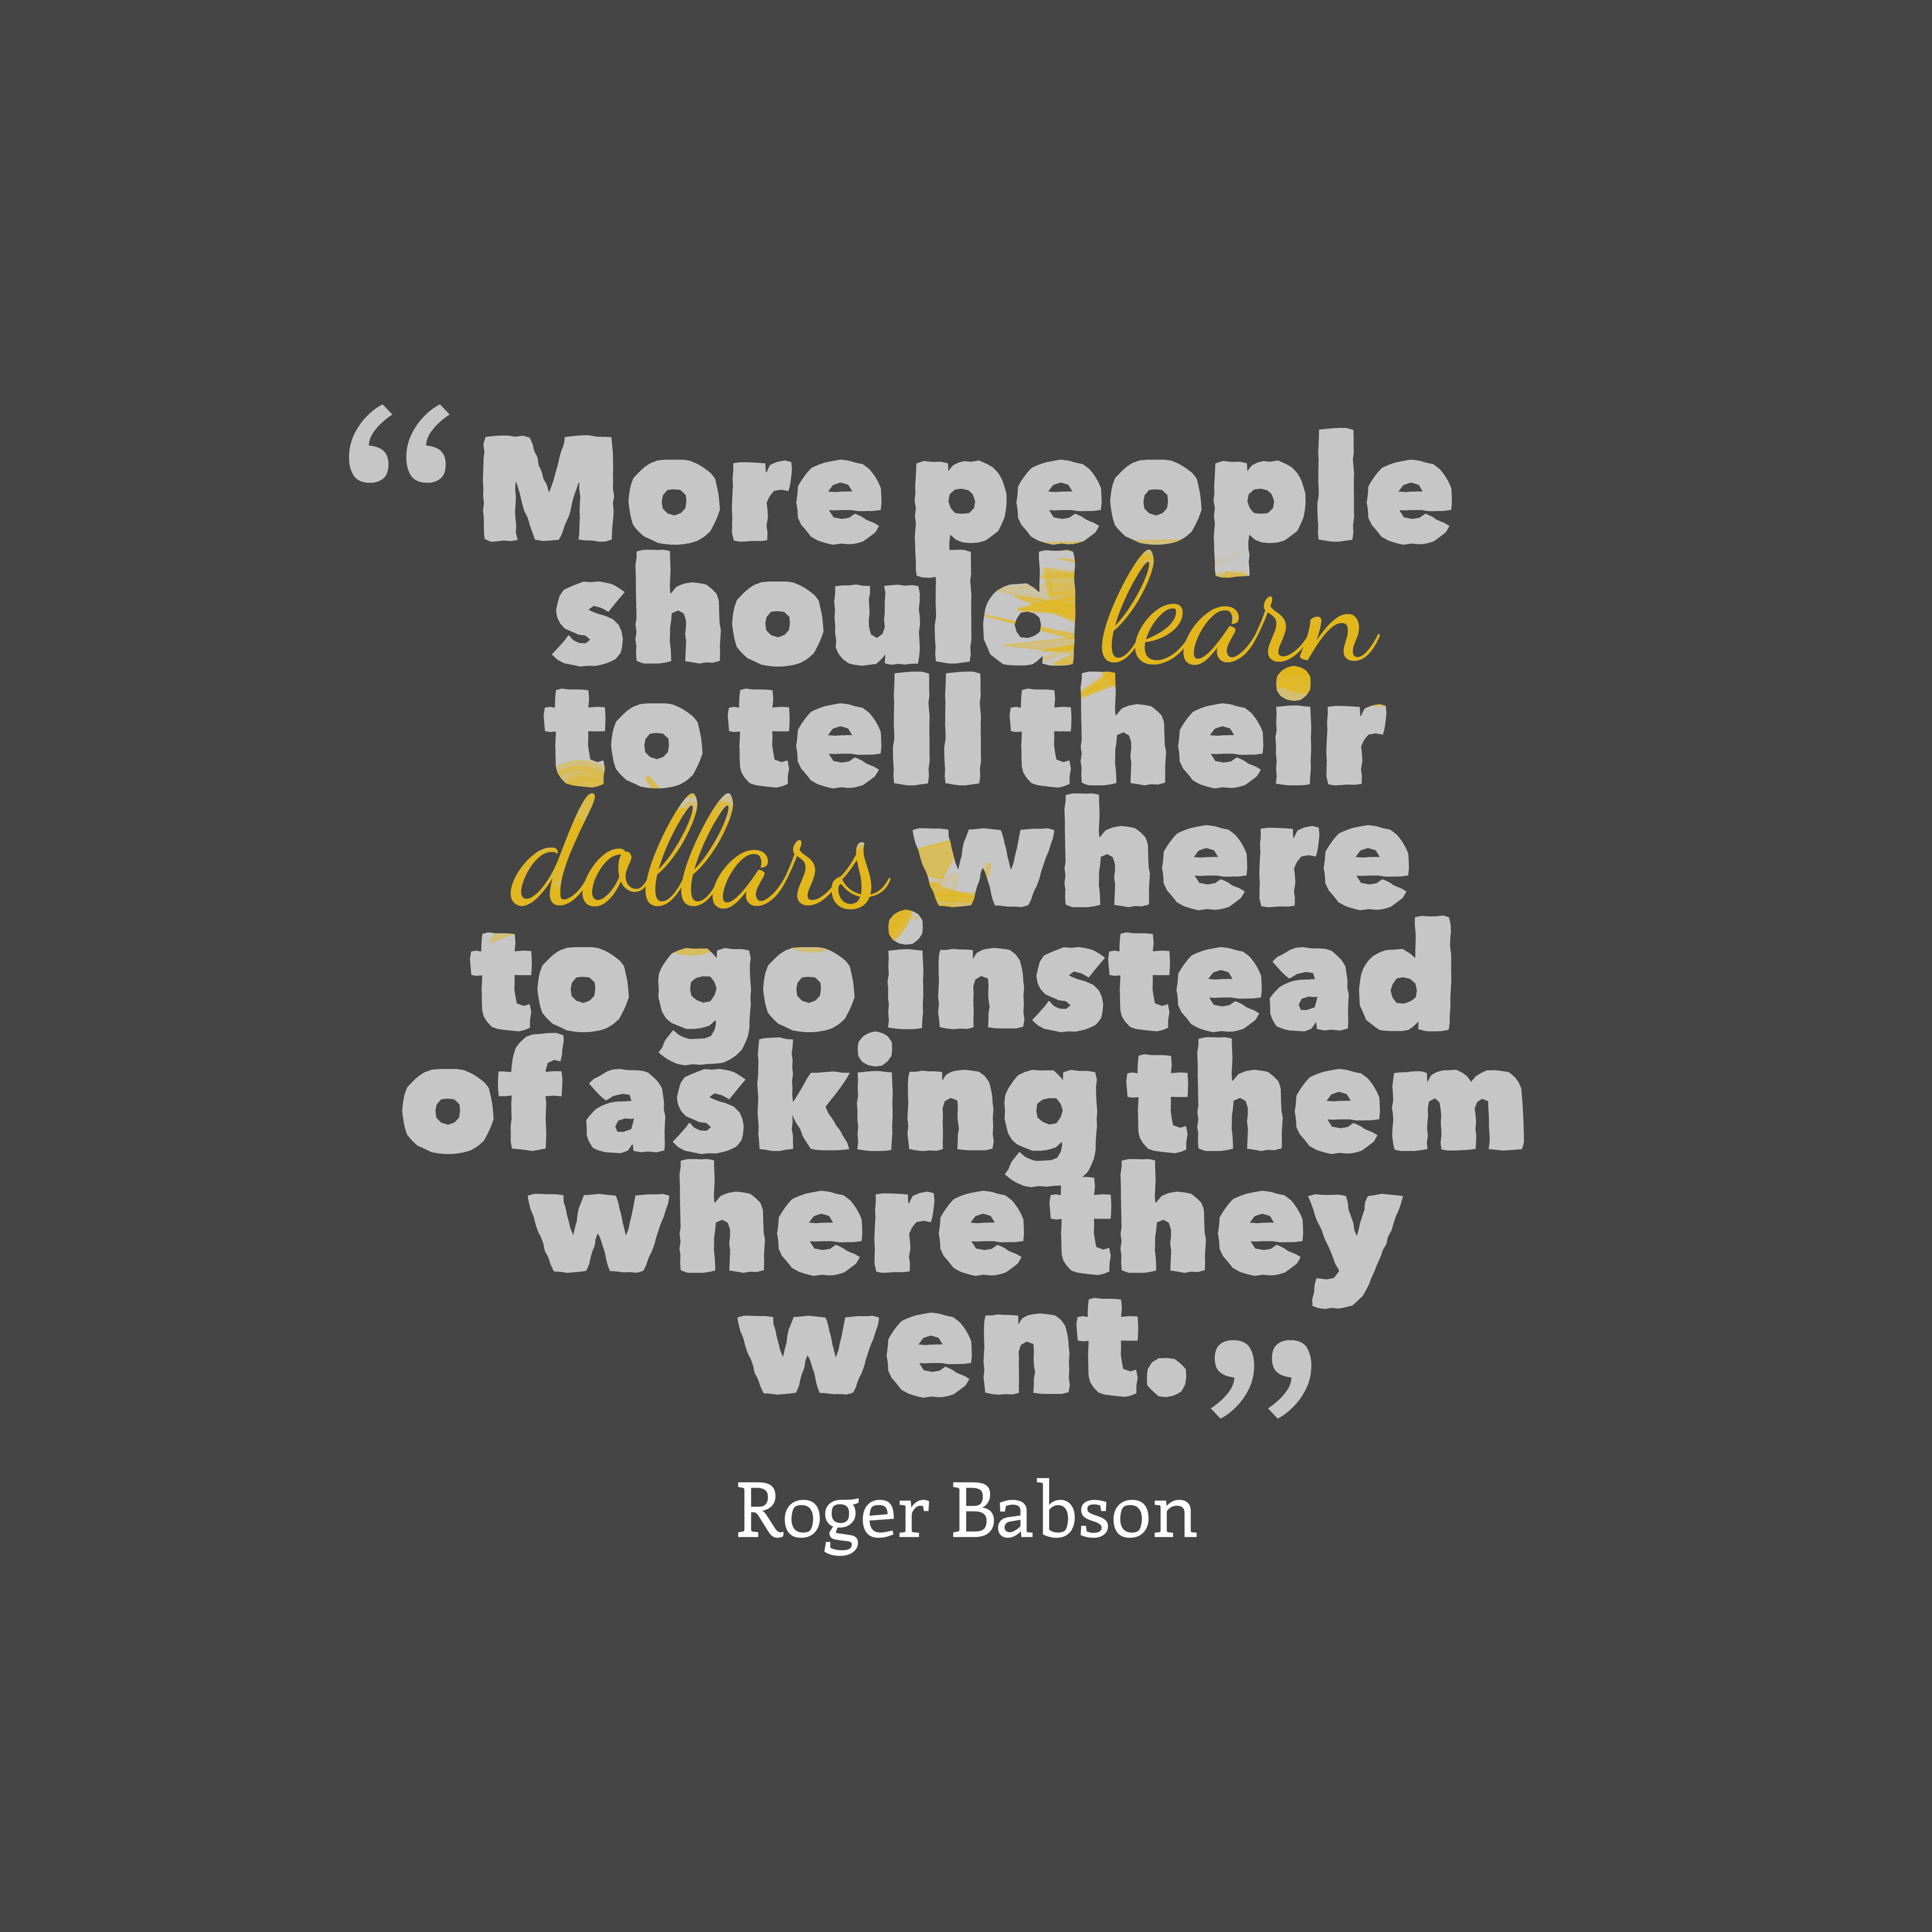 Quotes image of More people should learn to tell their dollars where to go instead of asking them where they went.